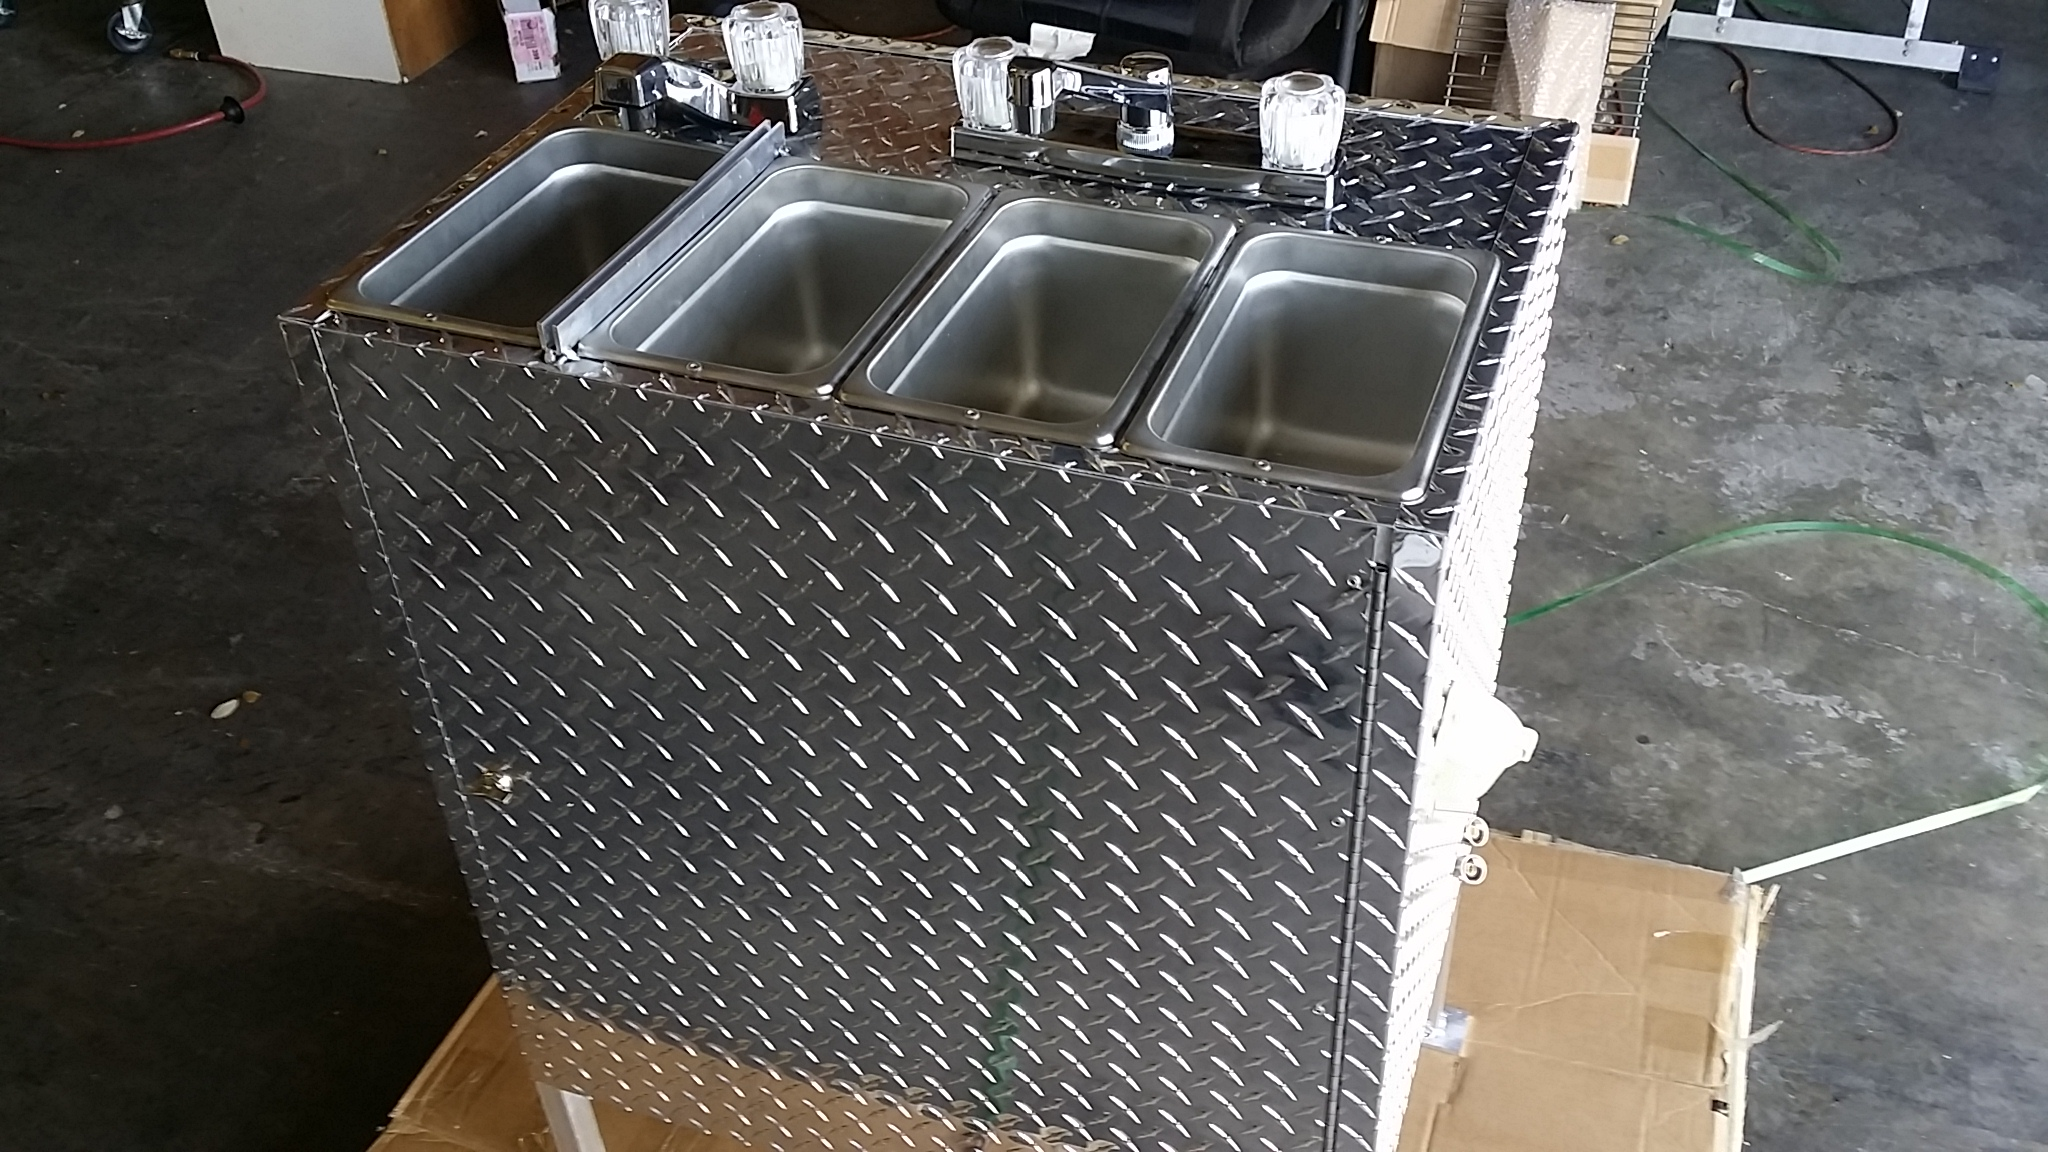 Portable 4 Compartment Sink.Medium Portable 4 Compartment Sink 12v Lp Gas Tankless Water Heater